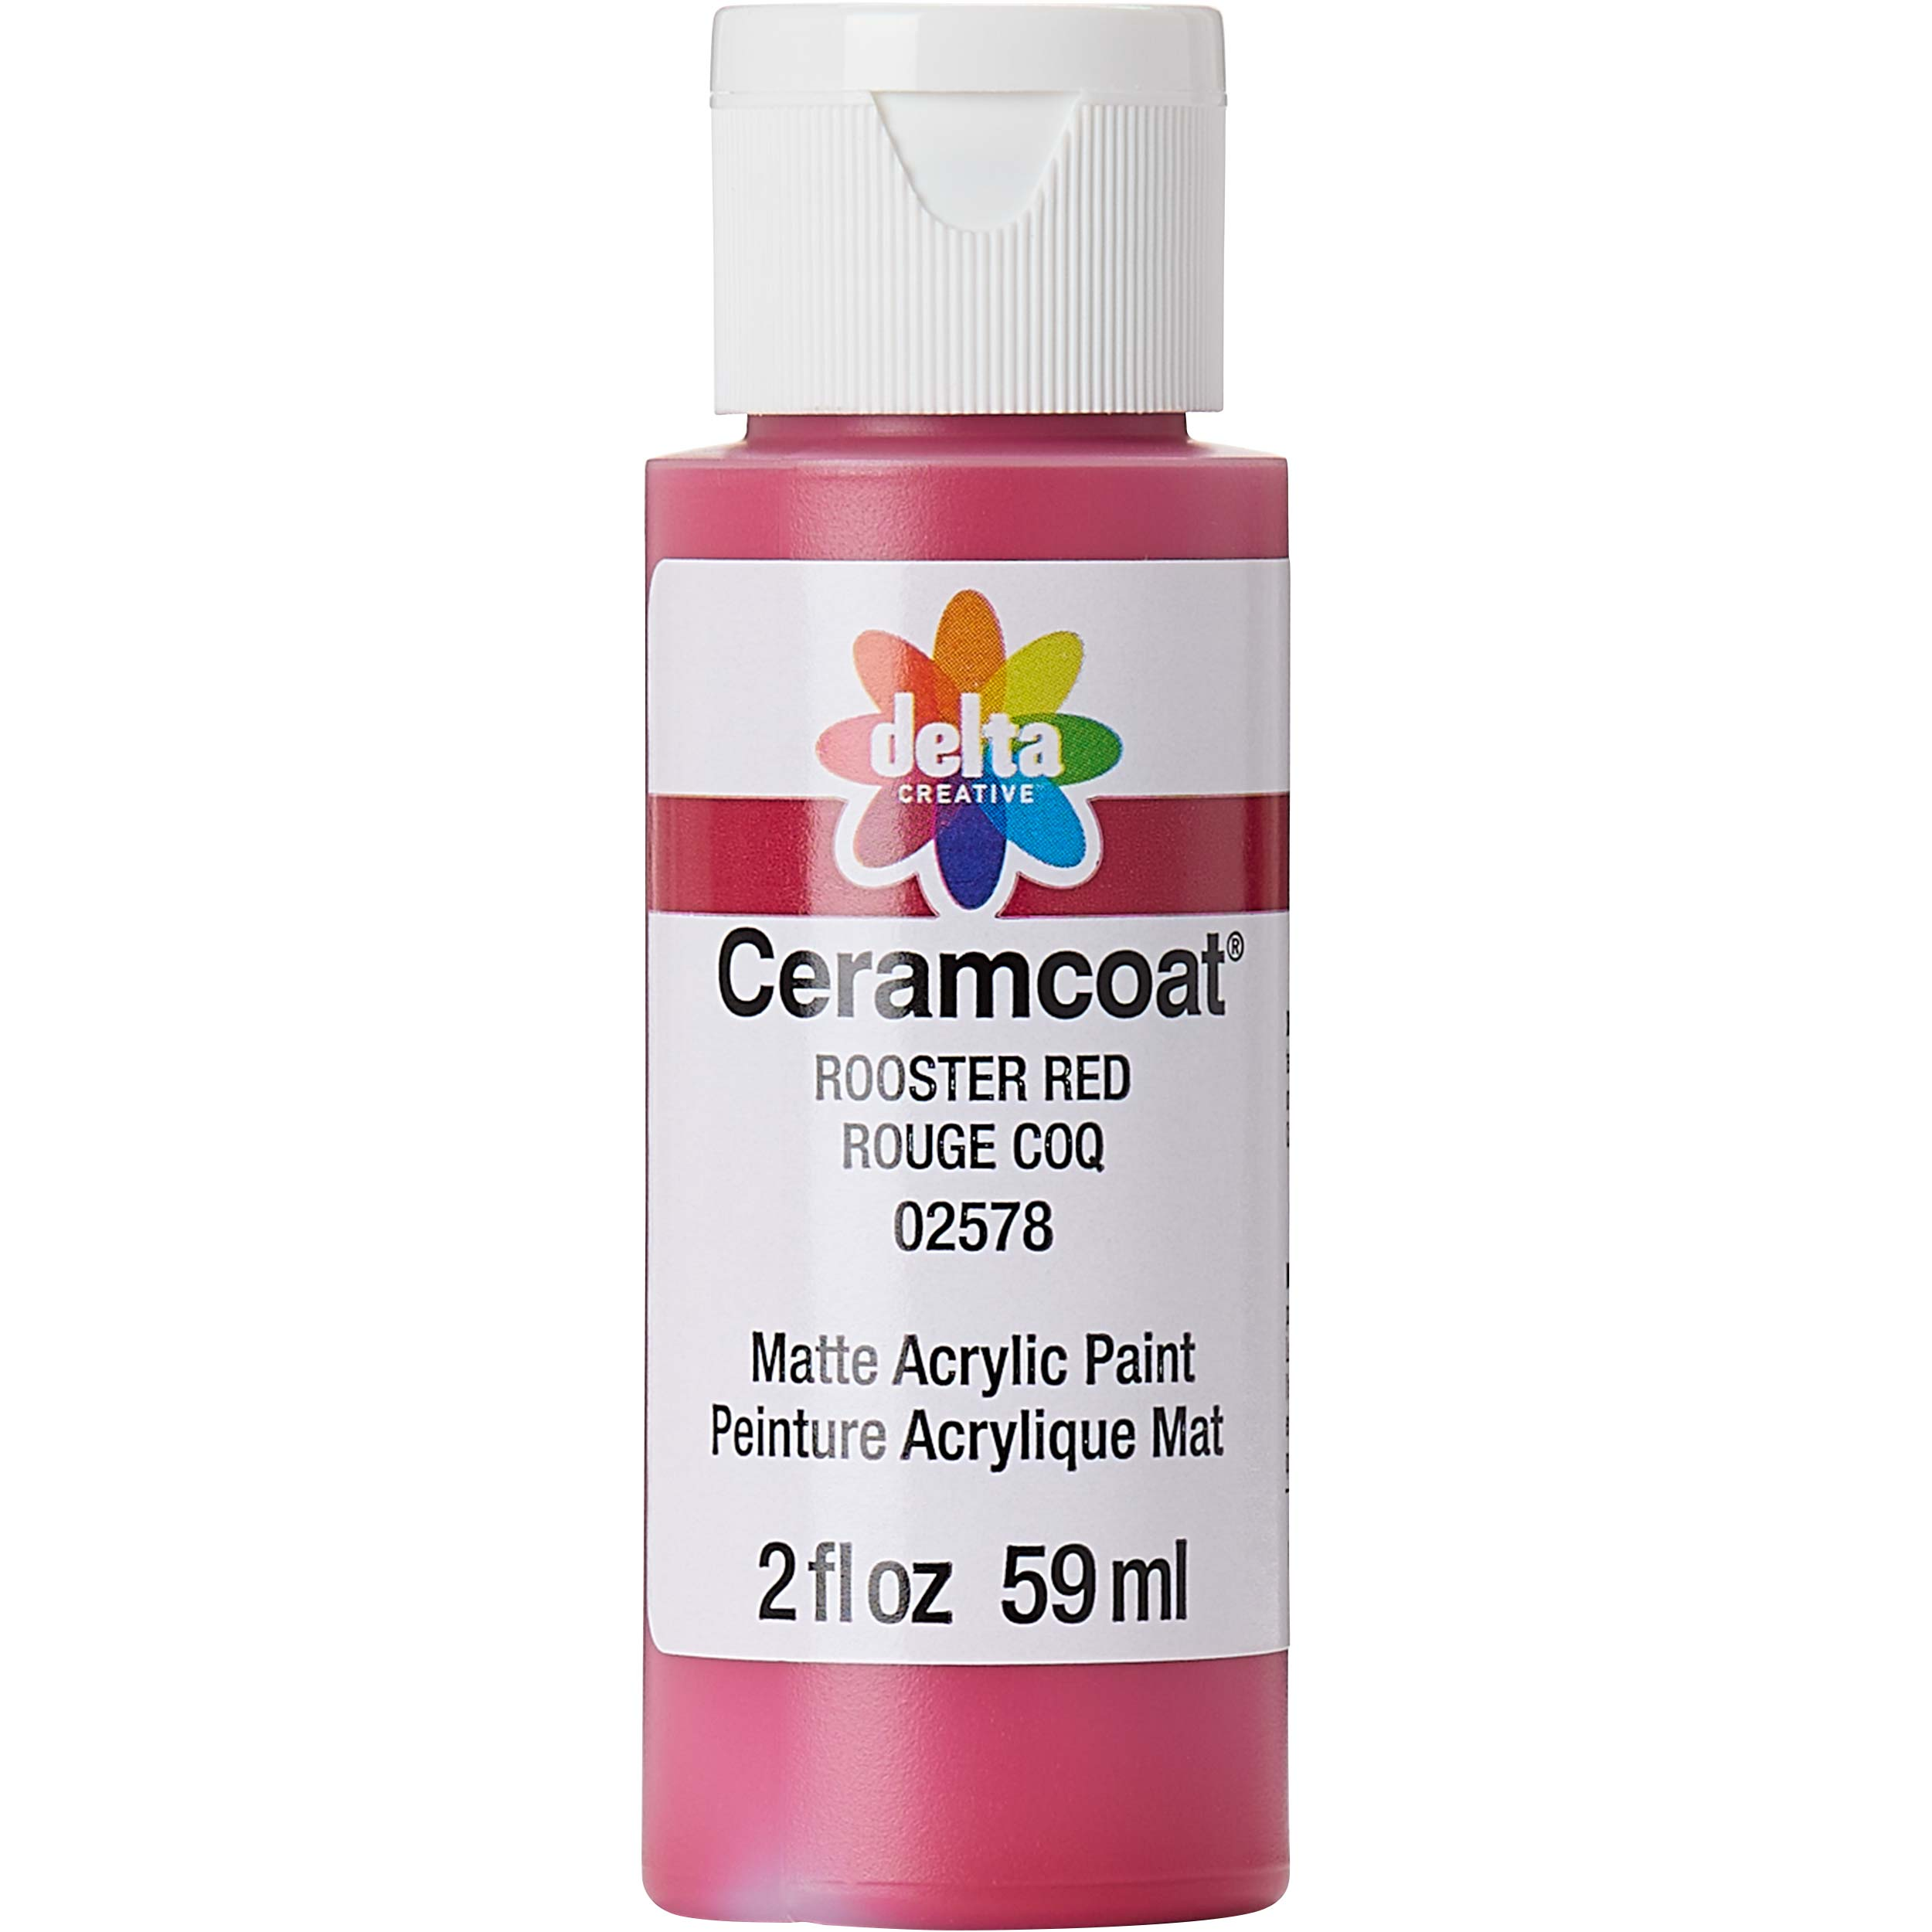 Delta Ceramcoat ® Acrylic Paint - Rooster Red, 2 oz. - 025780202W